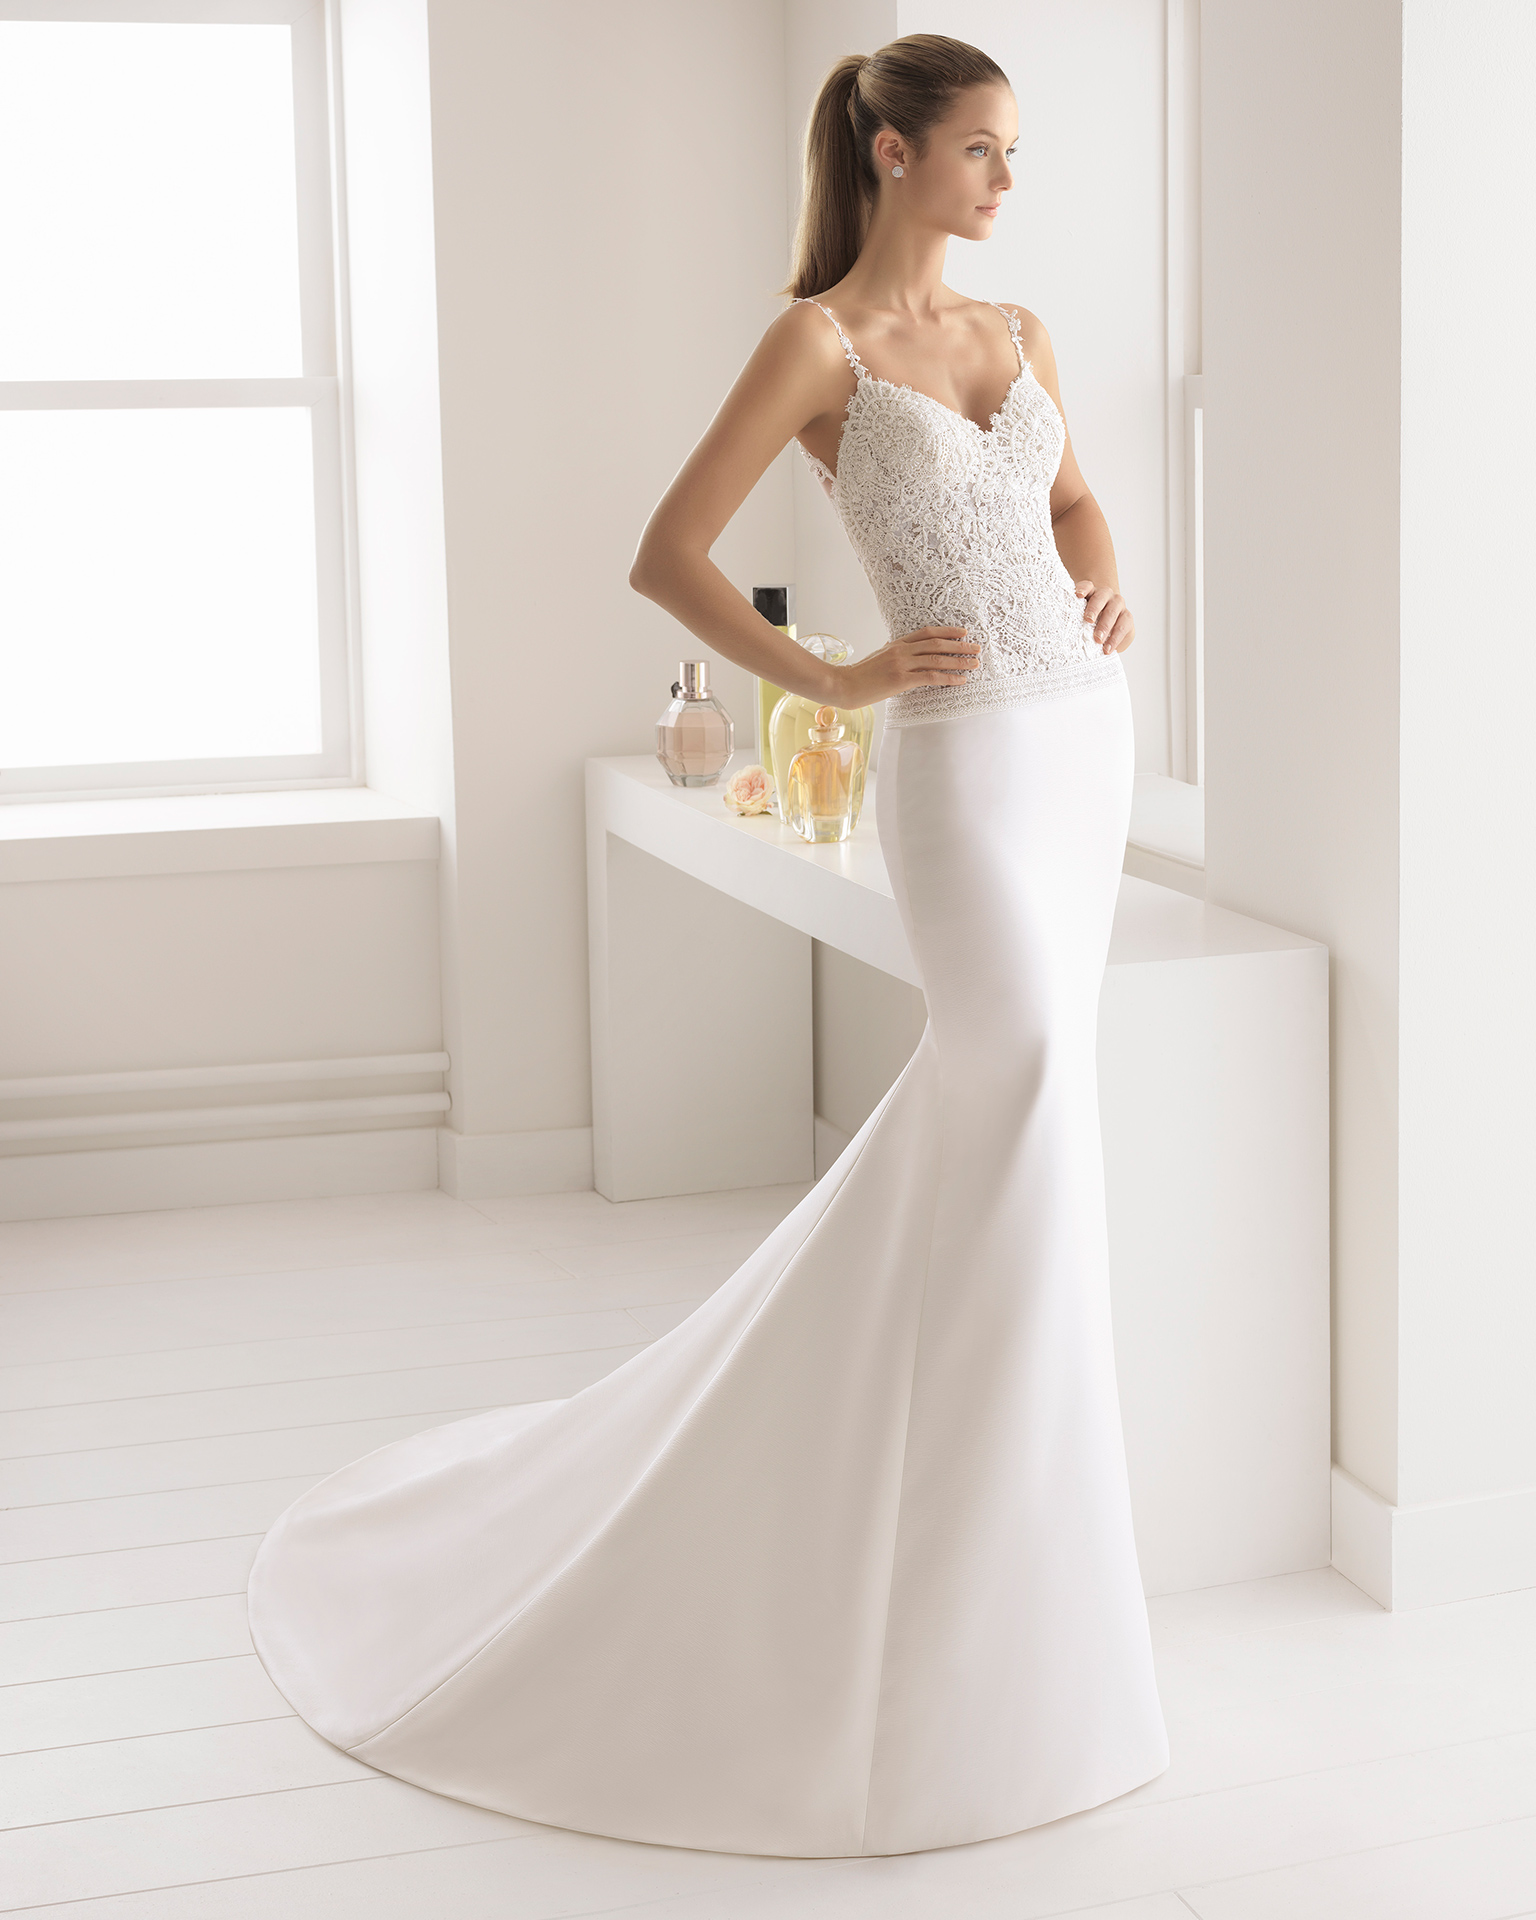 Mermaid-style duchess satin wedding dress with beaded guipure lace V-neckline and low back, in ivory.